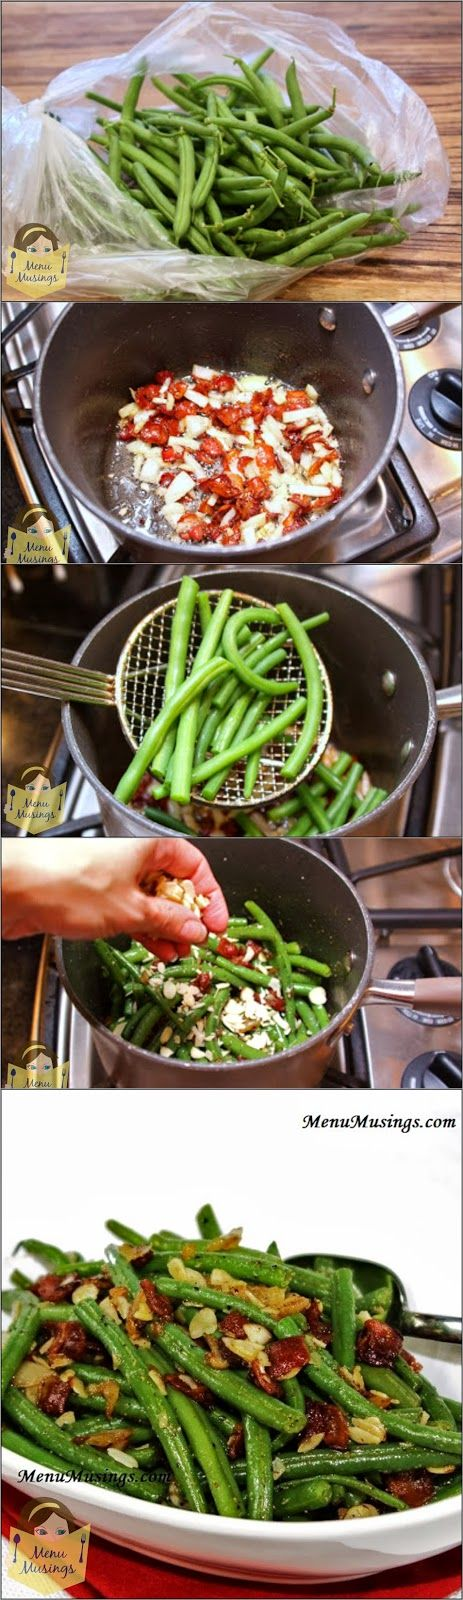 "Lily's Maple Bacon Green Beans with Slivered Almonds - I can't tell you how many green bean ""converts"" we've had with these.. always fresh, never from the can! Step-by-step photos to making my daughter's favorite vegetable!"